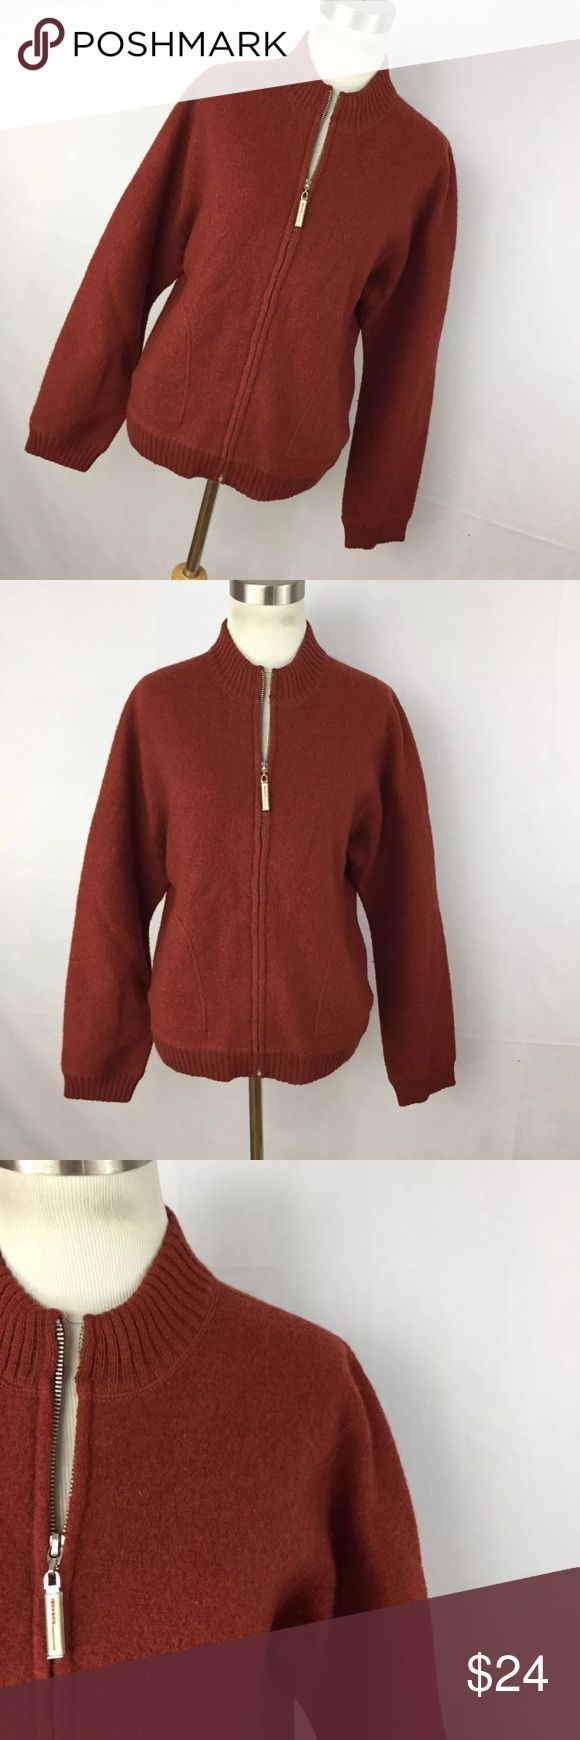 "Isda & Co L Jacket Boiled Wool Rust Orange Zip Up This is a great boiled wool jacket with a zipper front. 100% wool. Chest measurement  - 44"" Length measurement - 23"" Sleeve Length measurement - 24"". Excellent condition. Smoke free home isda Jackets & Coats"